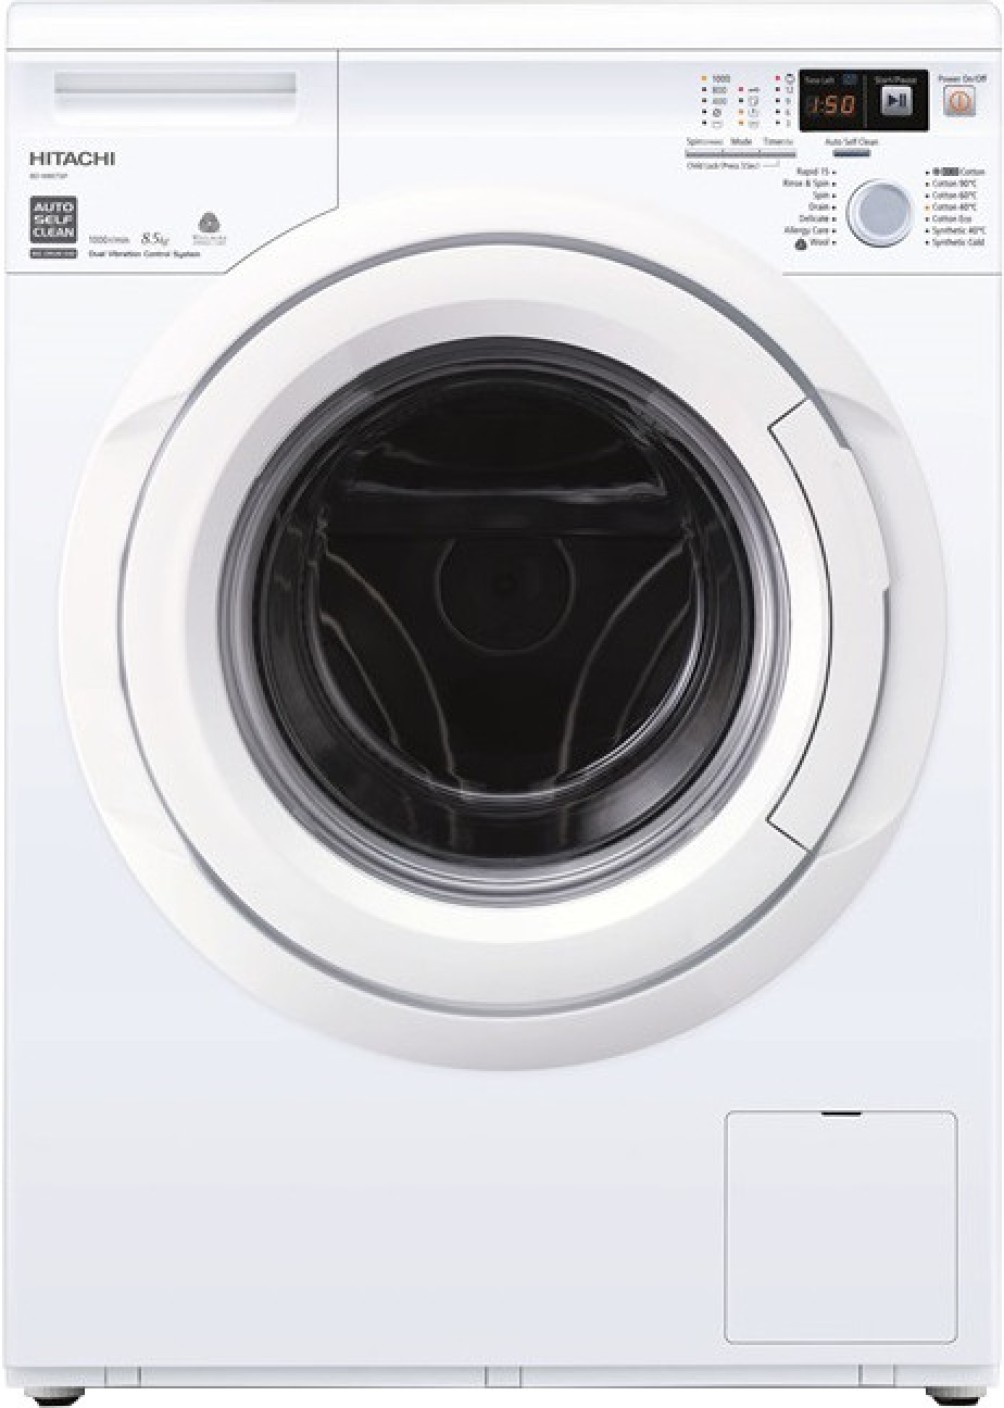 hitachi fully automatic washing machine manual